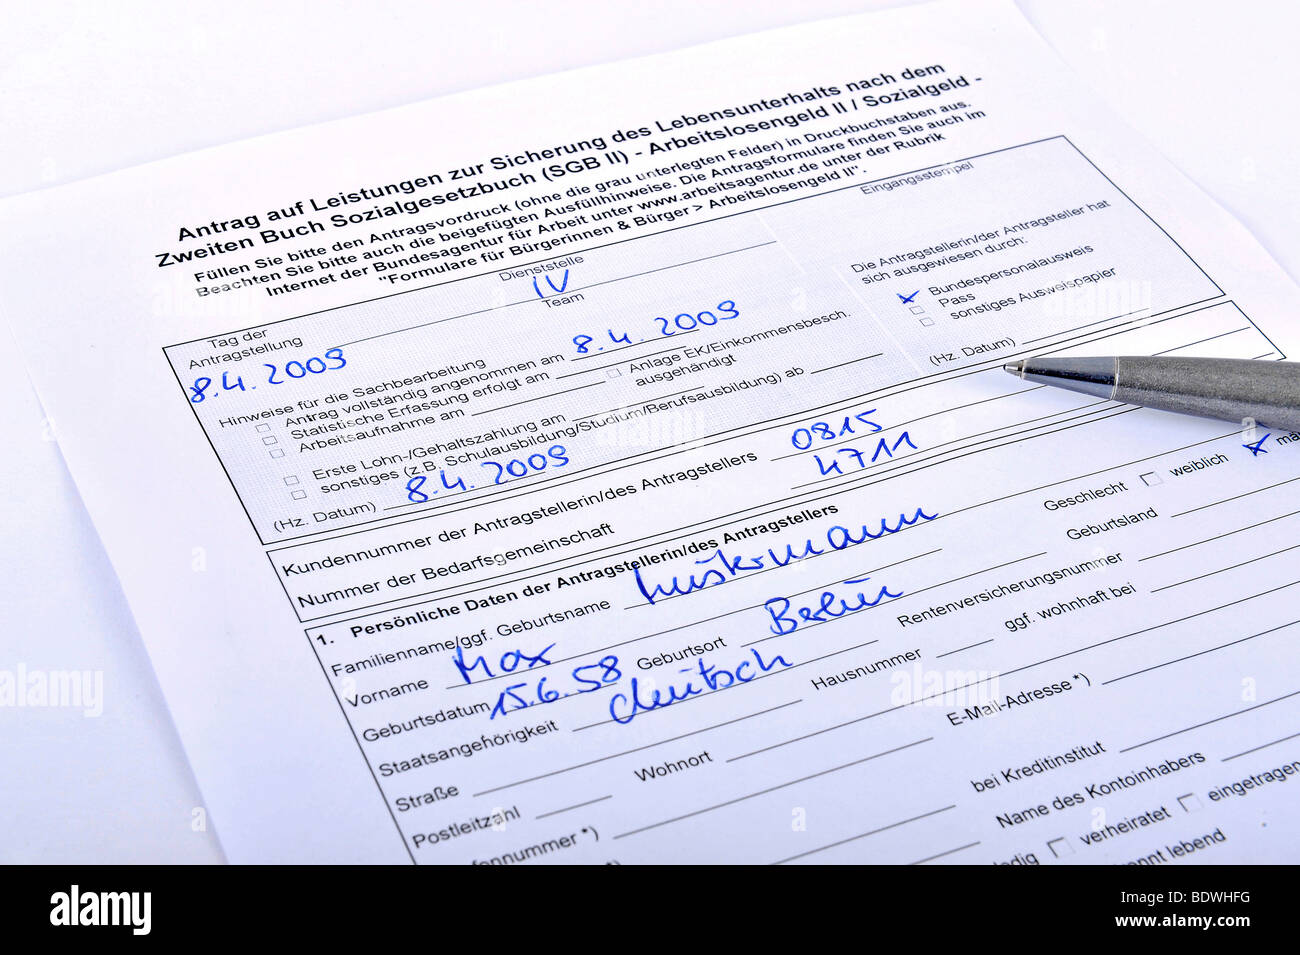 Application for unemployment benefits II, Hartz IV - Stock Image